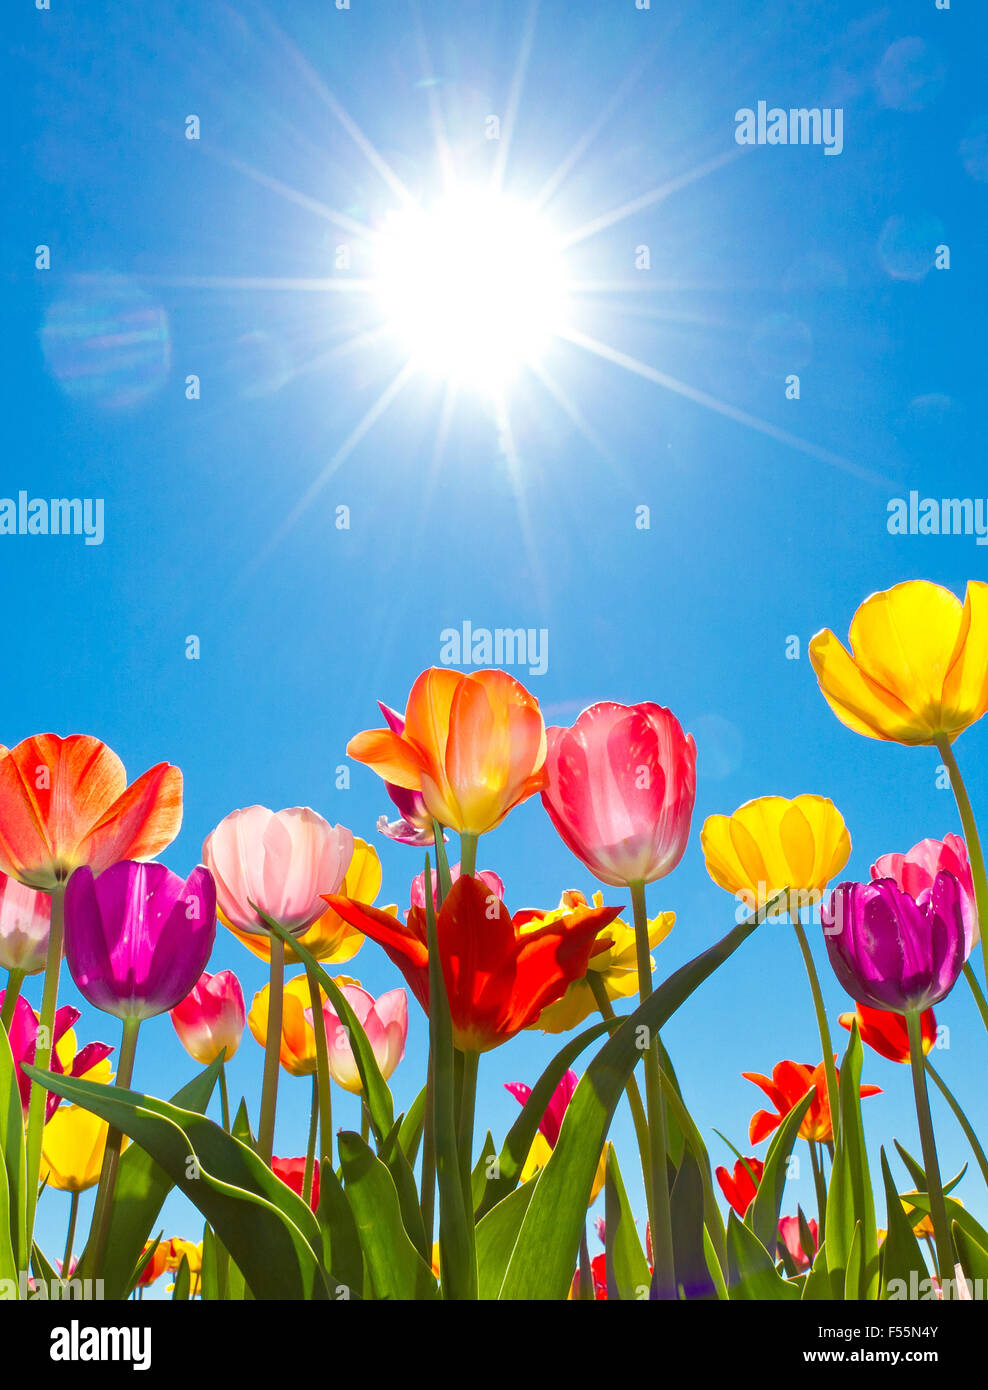 Colorful tulips in the sun - Stock Image